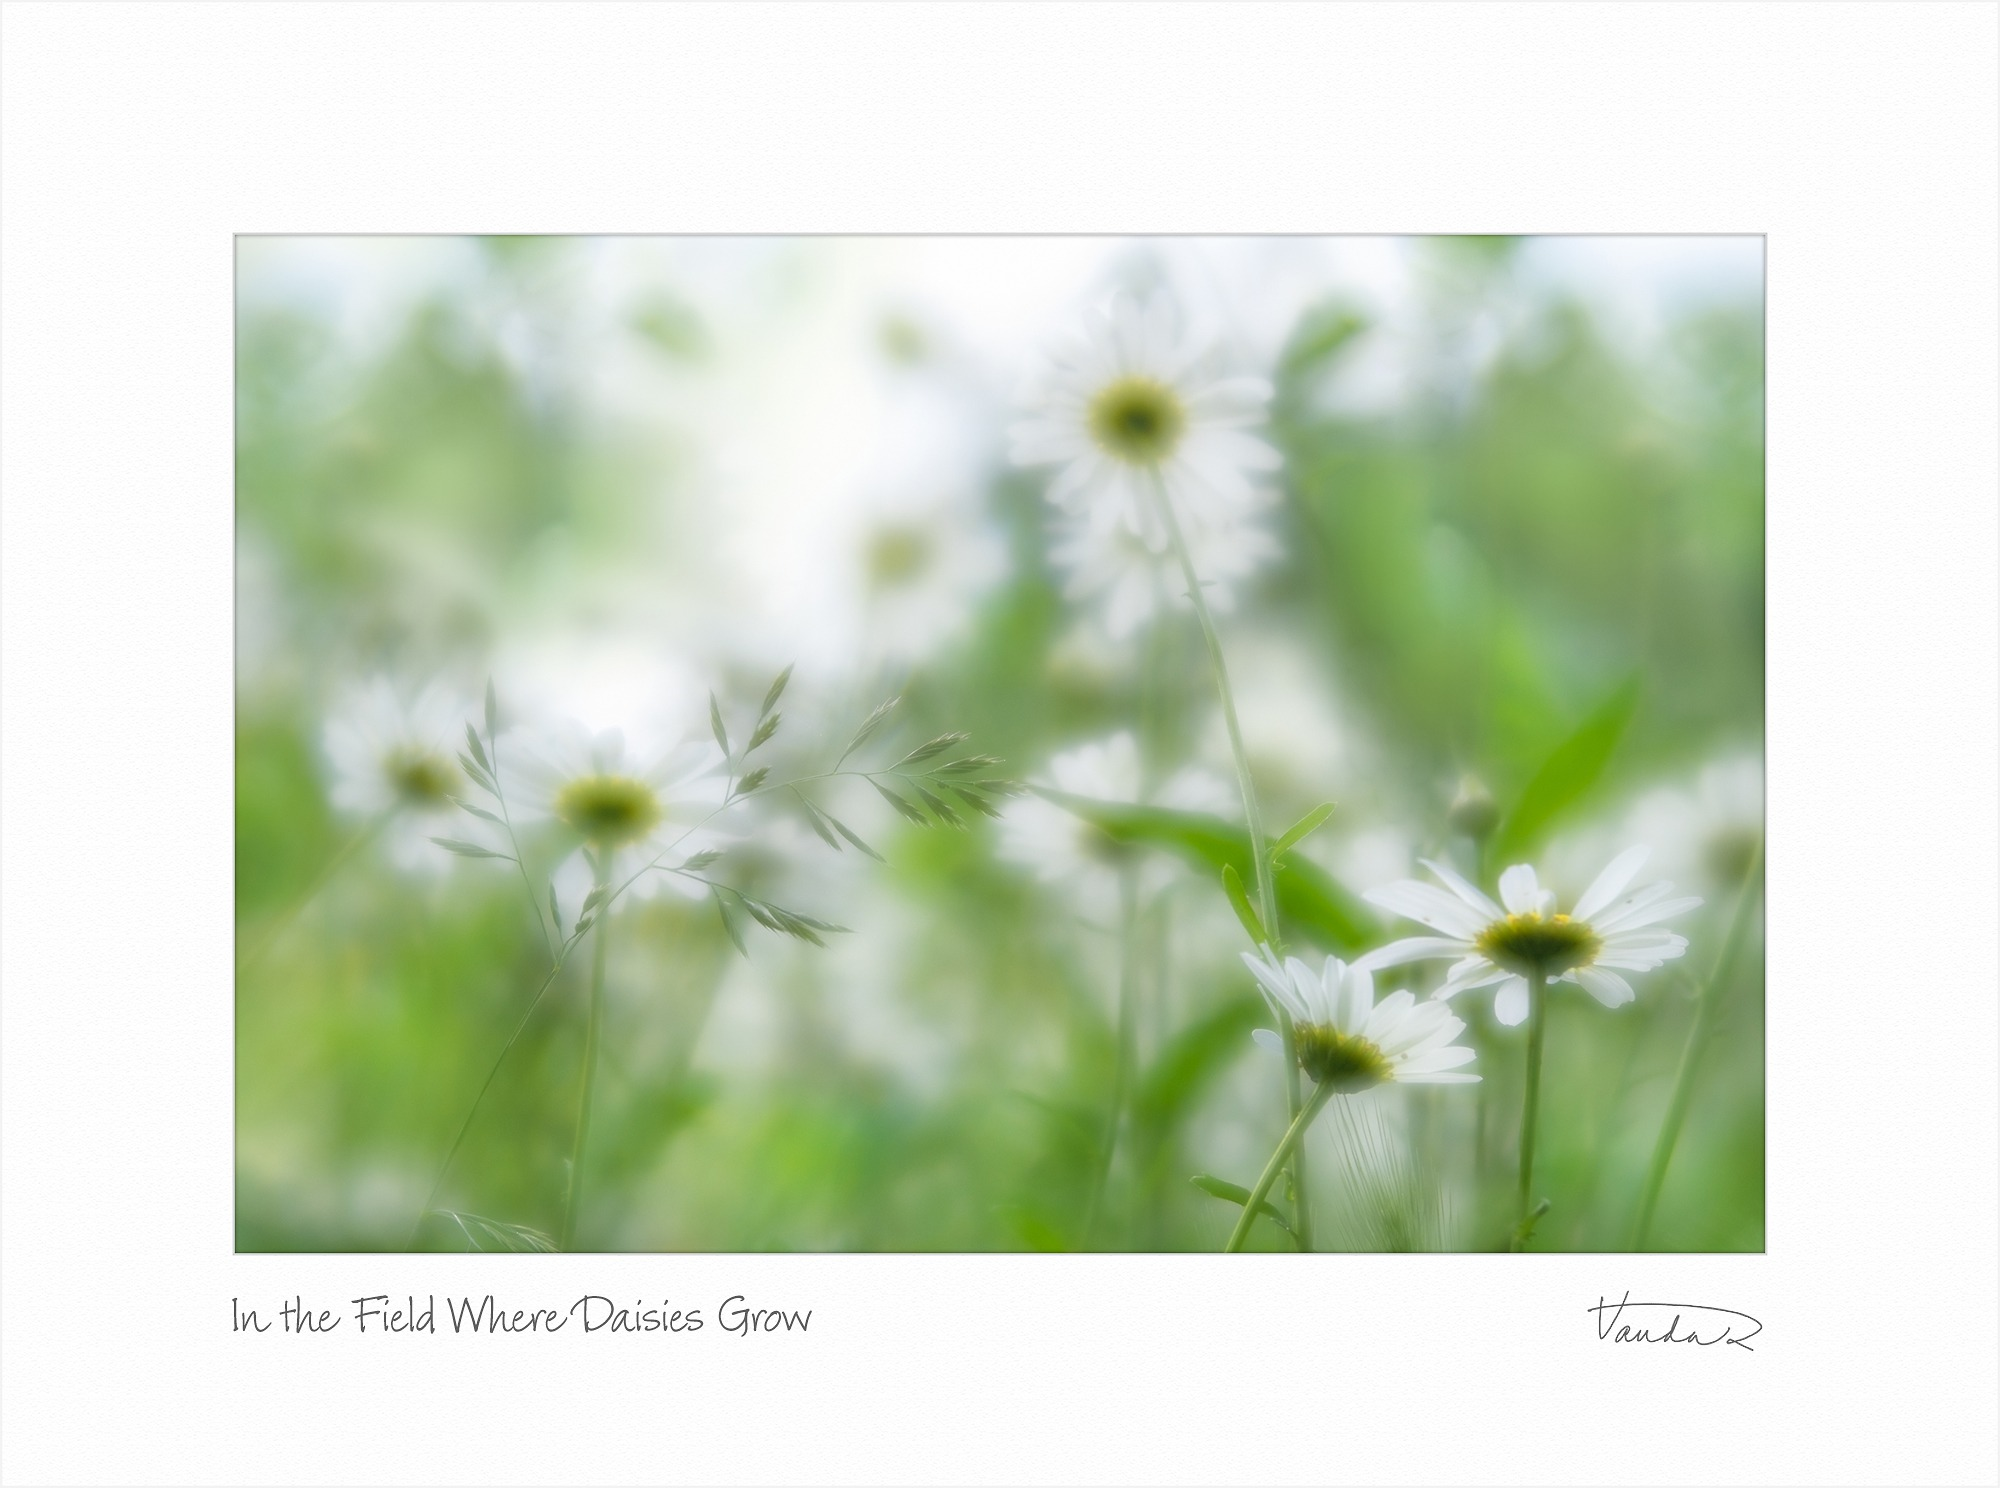 In the Field Where Daisies Grow